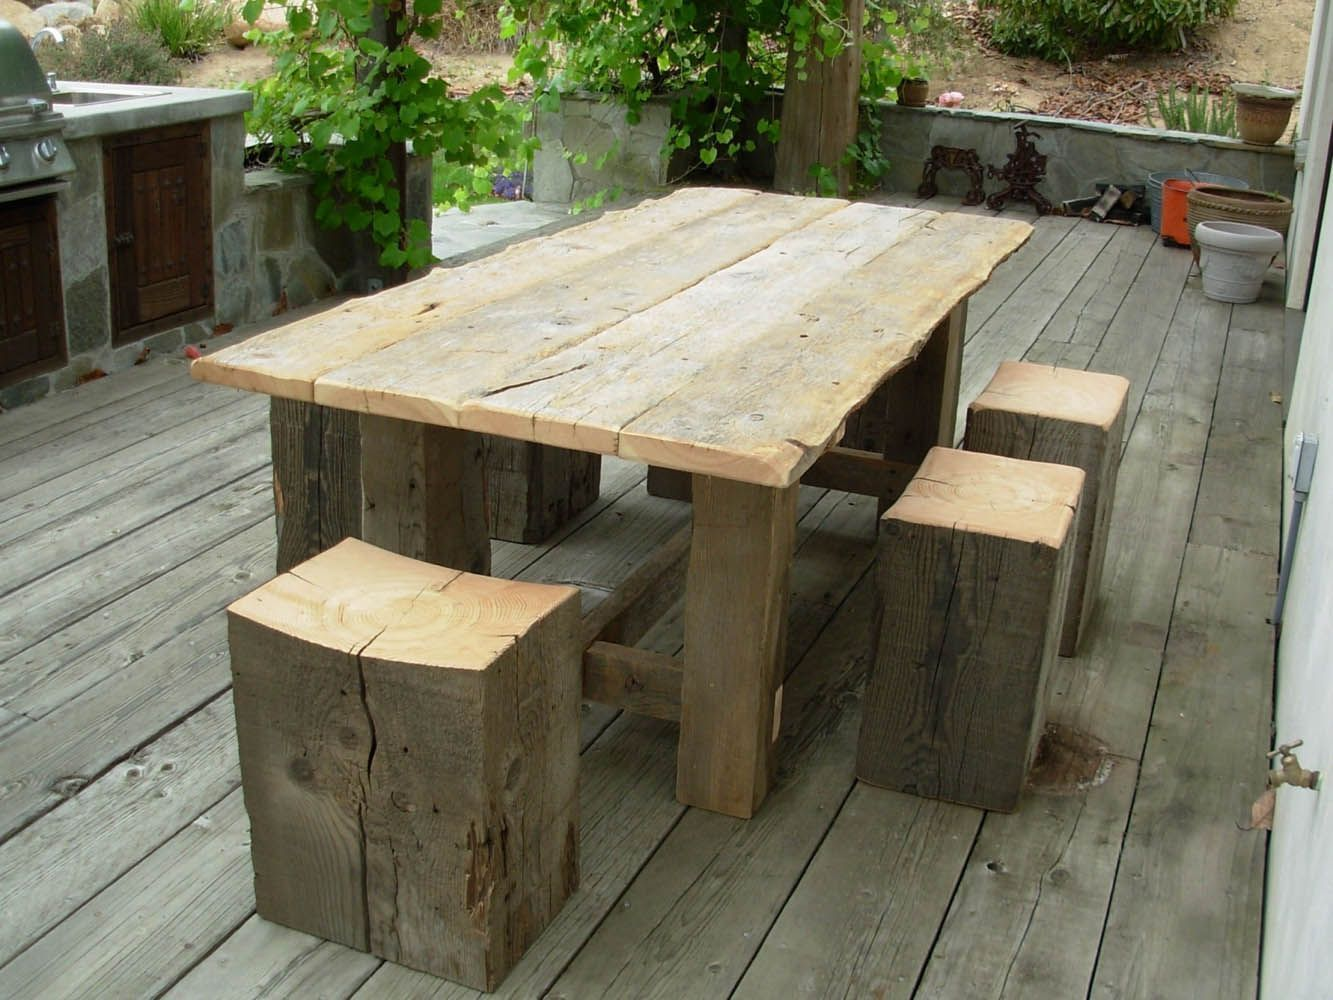 This outdoor patio table was built for the Vintage Timberworks Temecula showroom using weathered Gray Board planking with worn rustic edges. The table base was built with 6x6 Douglas fir timbers and the solid block stools were cut from 12x16 beams with a slight curve in the top for comfort. Products Used: Sanded Gray Board Plank, Sanded Douglas Fir Beams